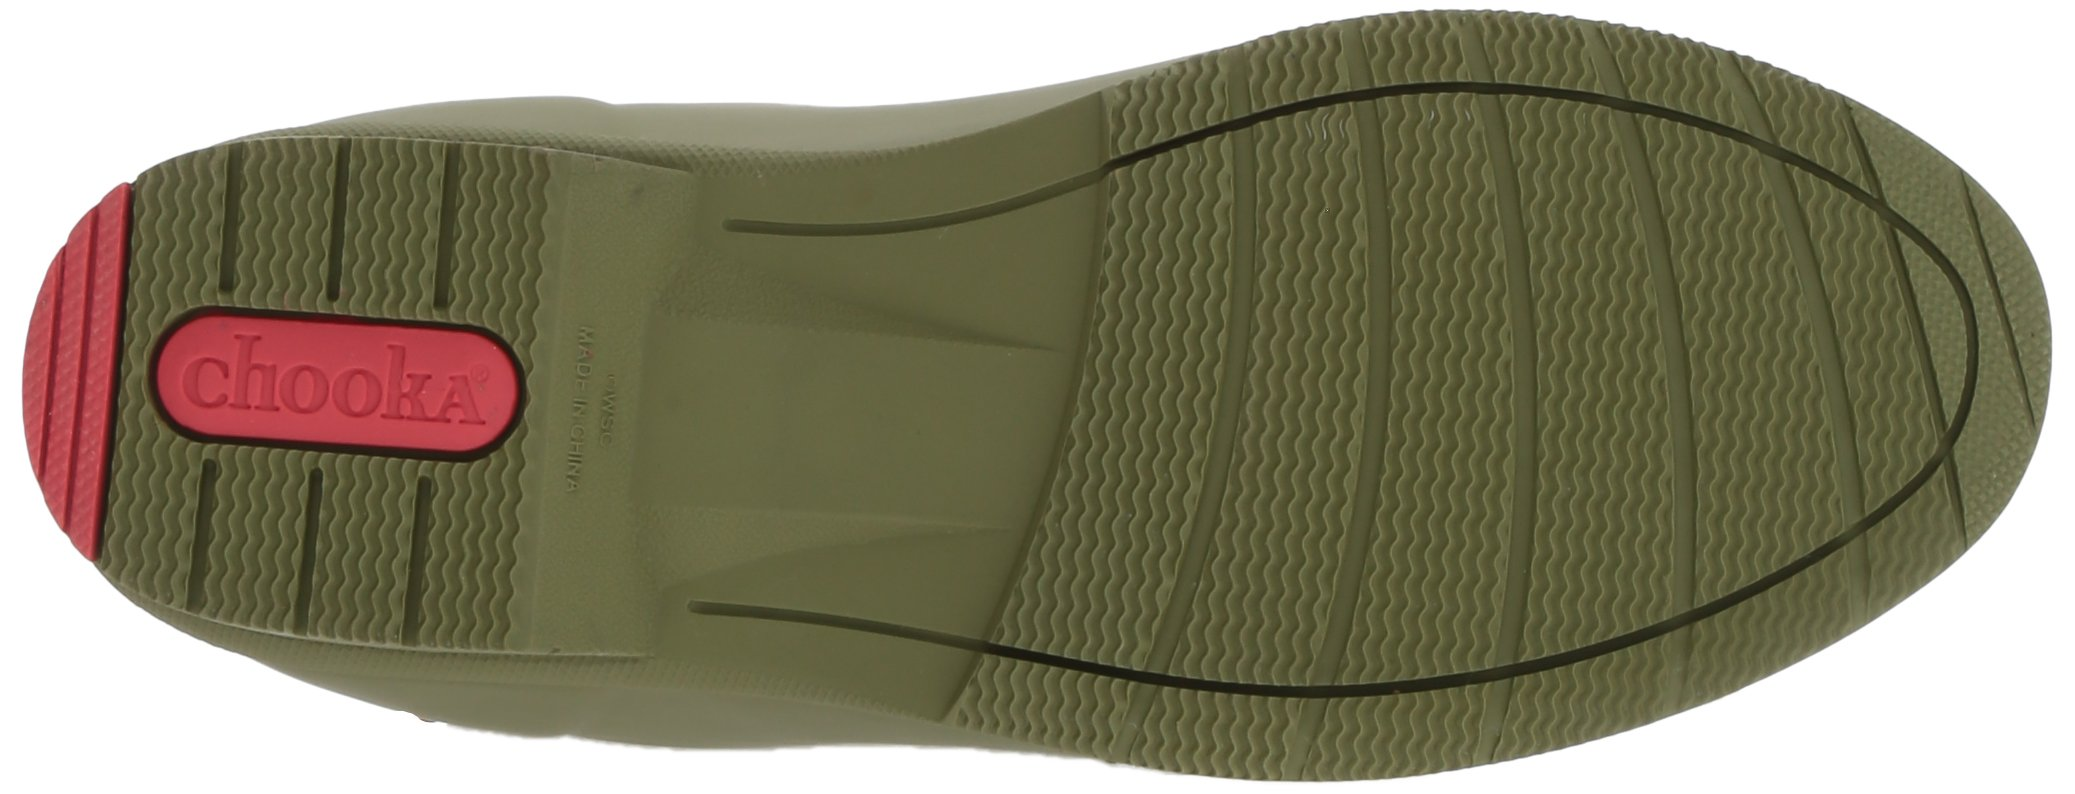 Chooka Women's Mid-Height Memory Foam Rain Boot, Olive, 9 M US by Chooka (Image #3)